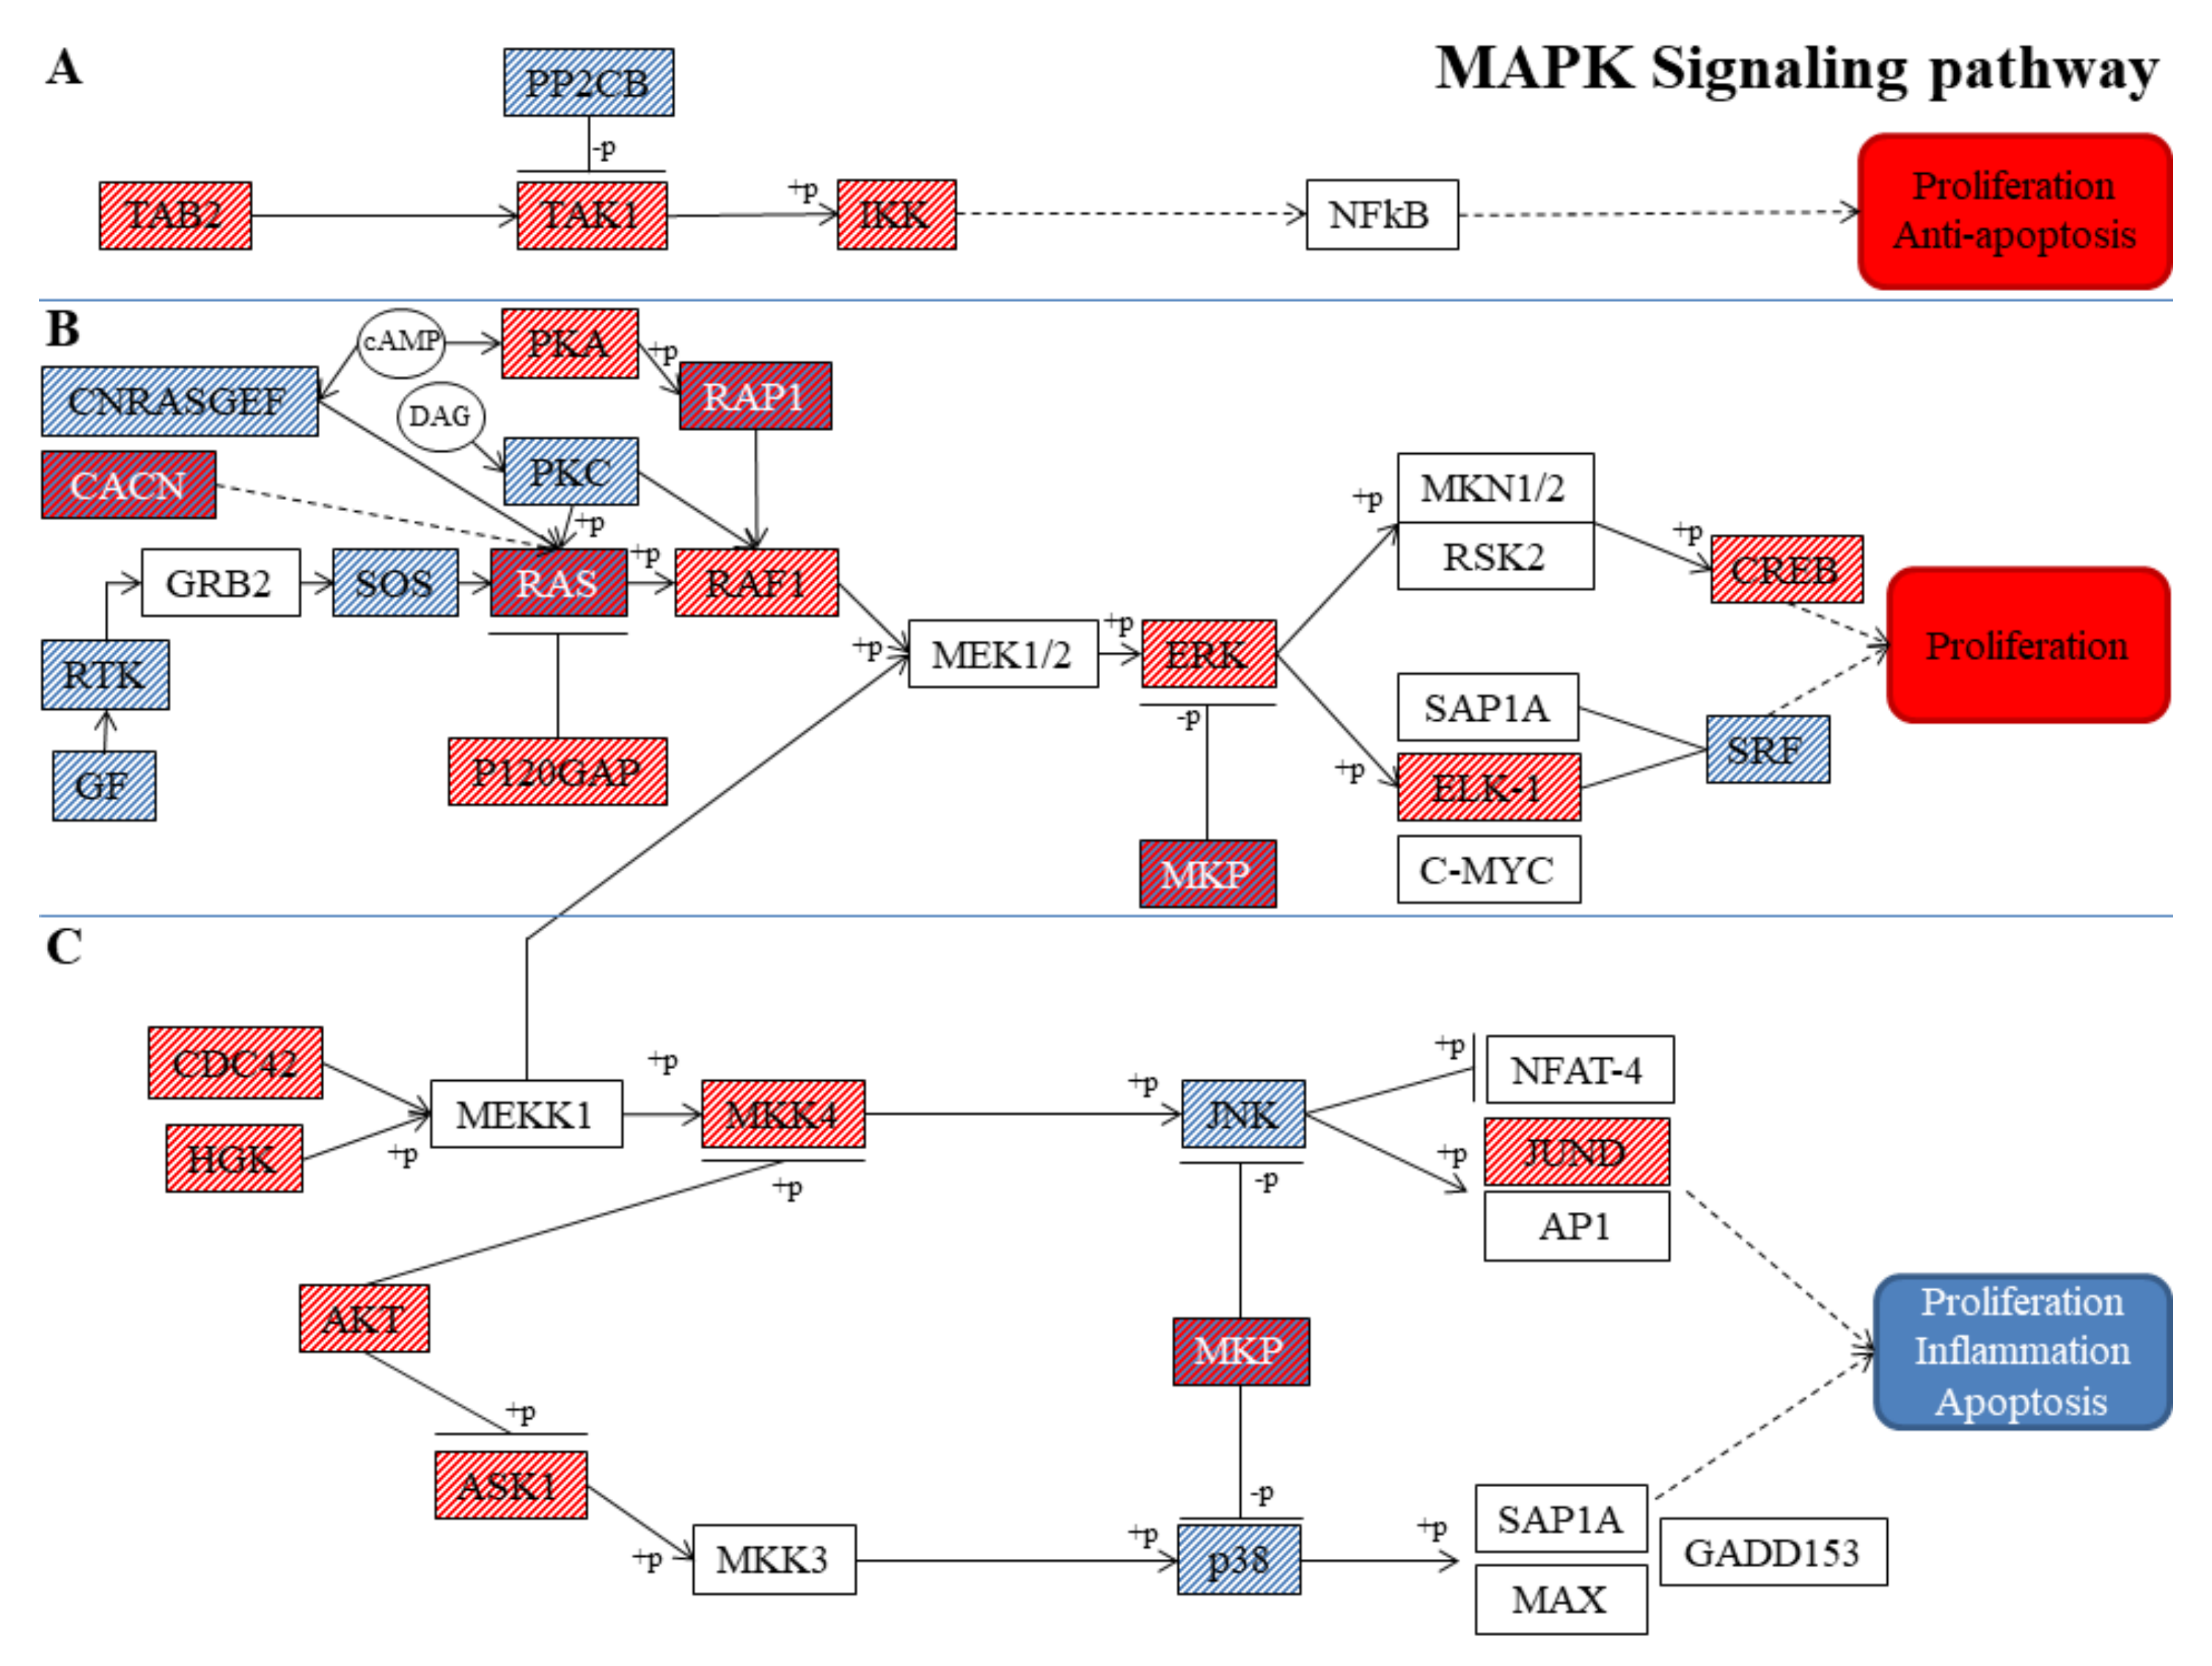 Nutrients | Free Full-Text | Transcriptomic ysis of MAPK ... on insulin pathway, cyclin-dependent kinase, il-6 signaling pathway, thyroid pathway, jak-stat signaling pathway, cell signaling, adenylate cyclase pathway, pi3k/akt/mtor pathway, phosphatidylinositol 3-kinase pathway, receptor tyrosine kinase, wnt signaling pathway, jak 1 2 3 signaling pathway, pi 3-kinase pathway, protein kinase c, mitogen-activated protein kinase, signal transduction, tyrosine kinase, tgf beta signaling pathway,